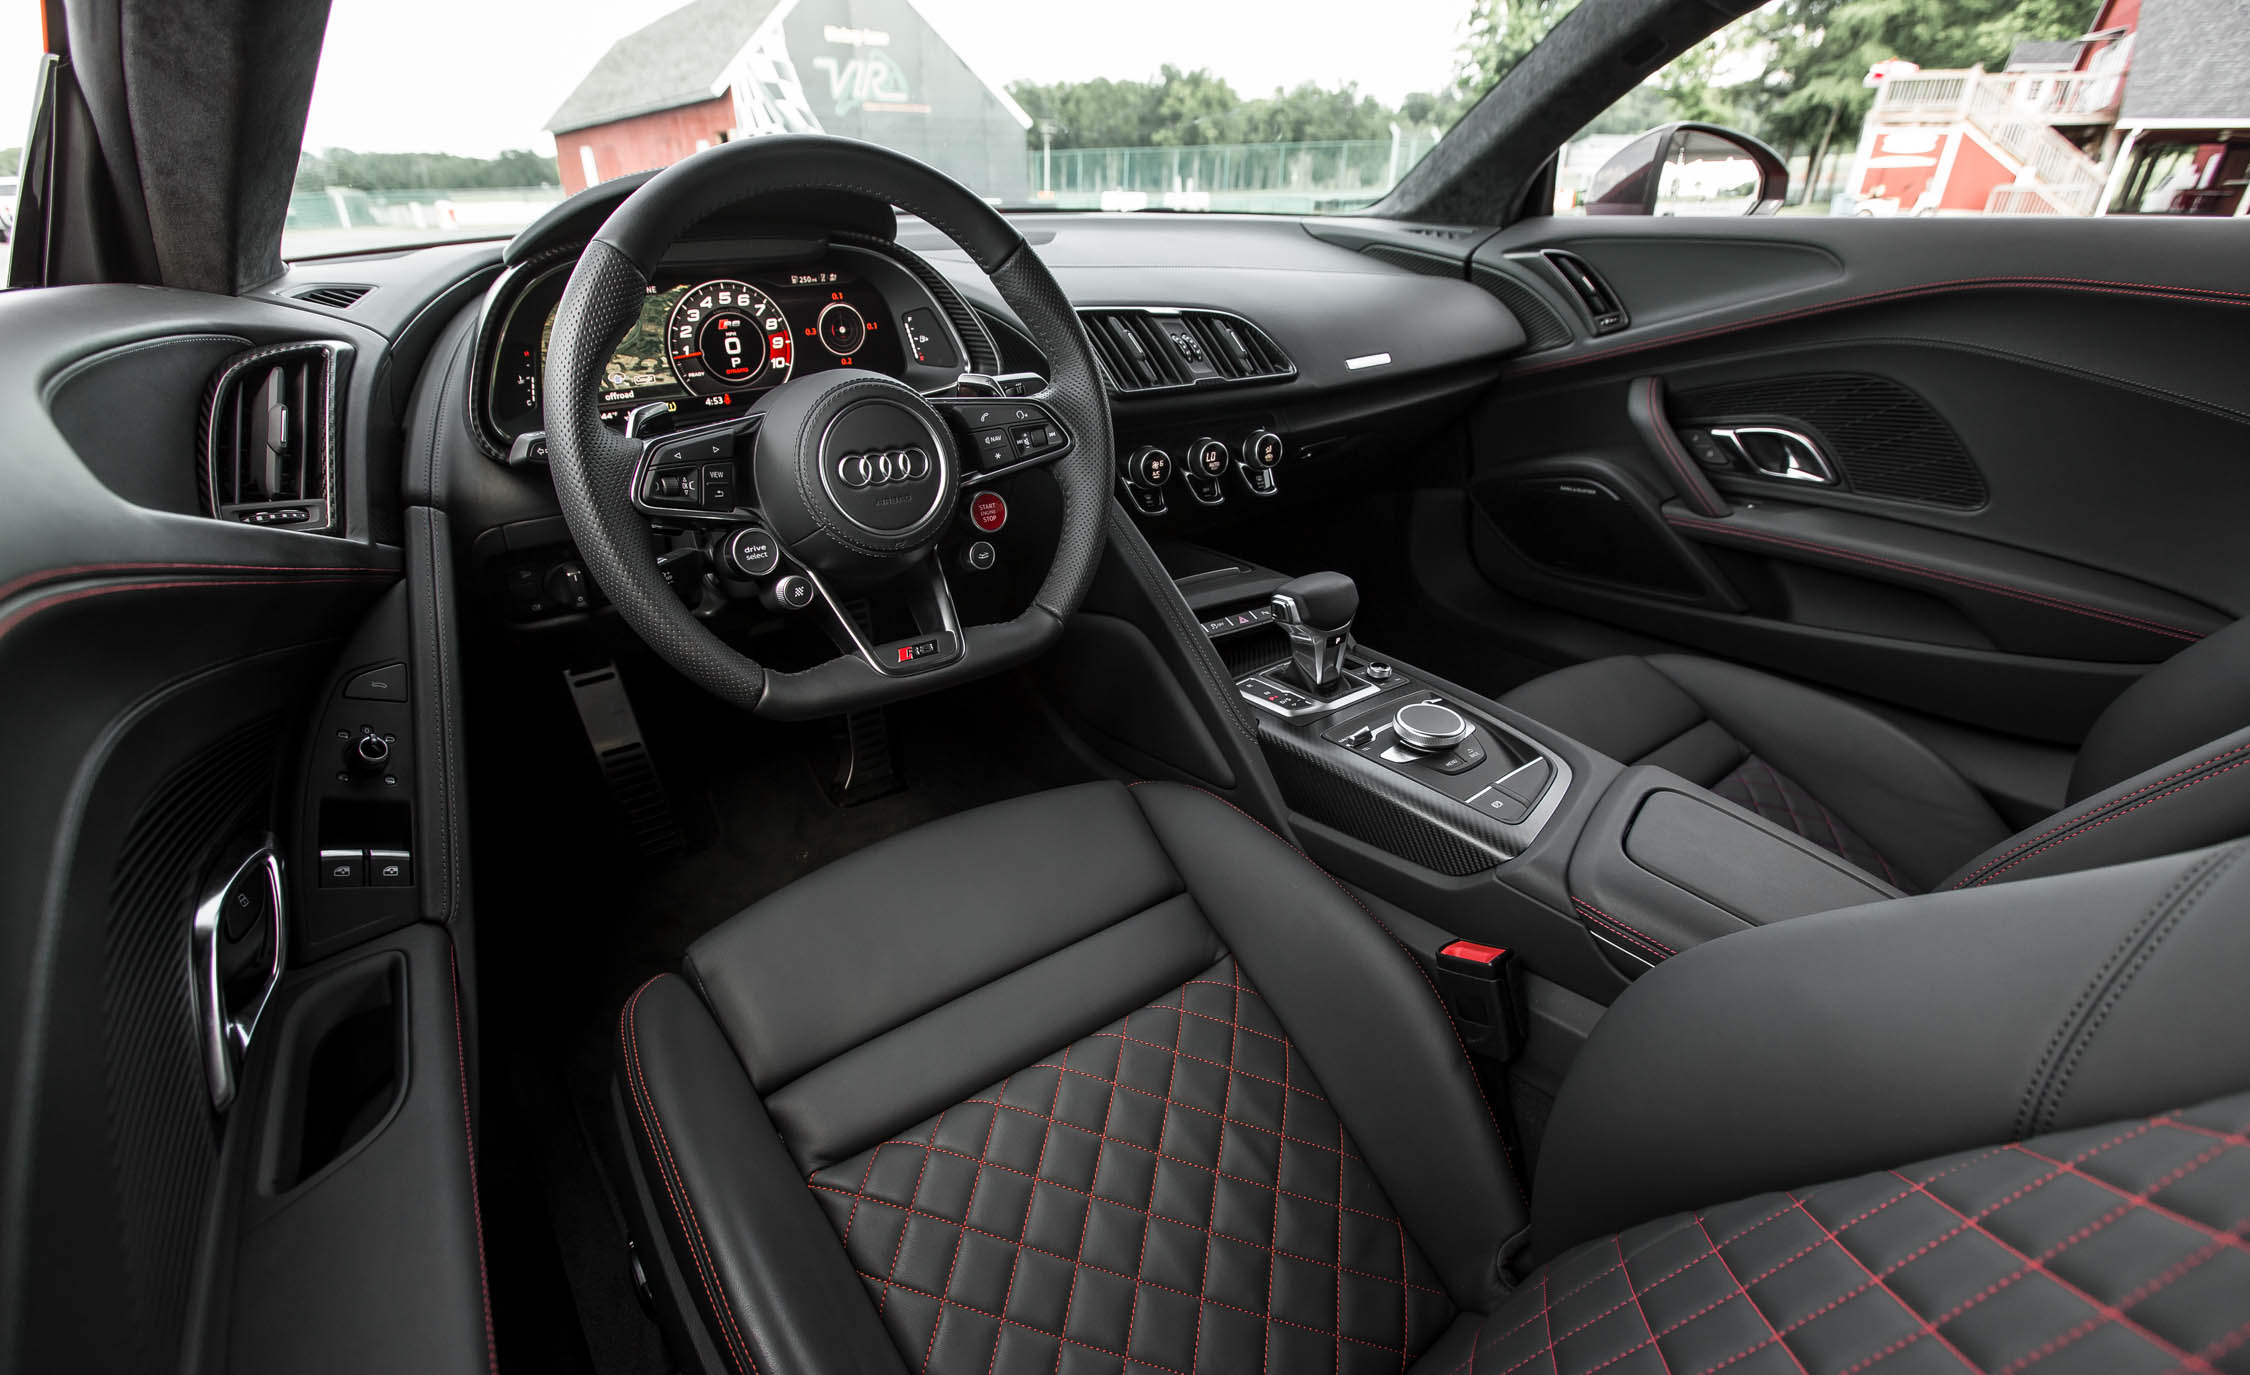 2017 Audi R8 V 10 Plus (Photo 9 of 19)